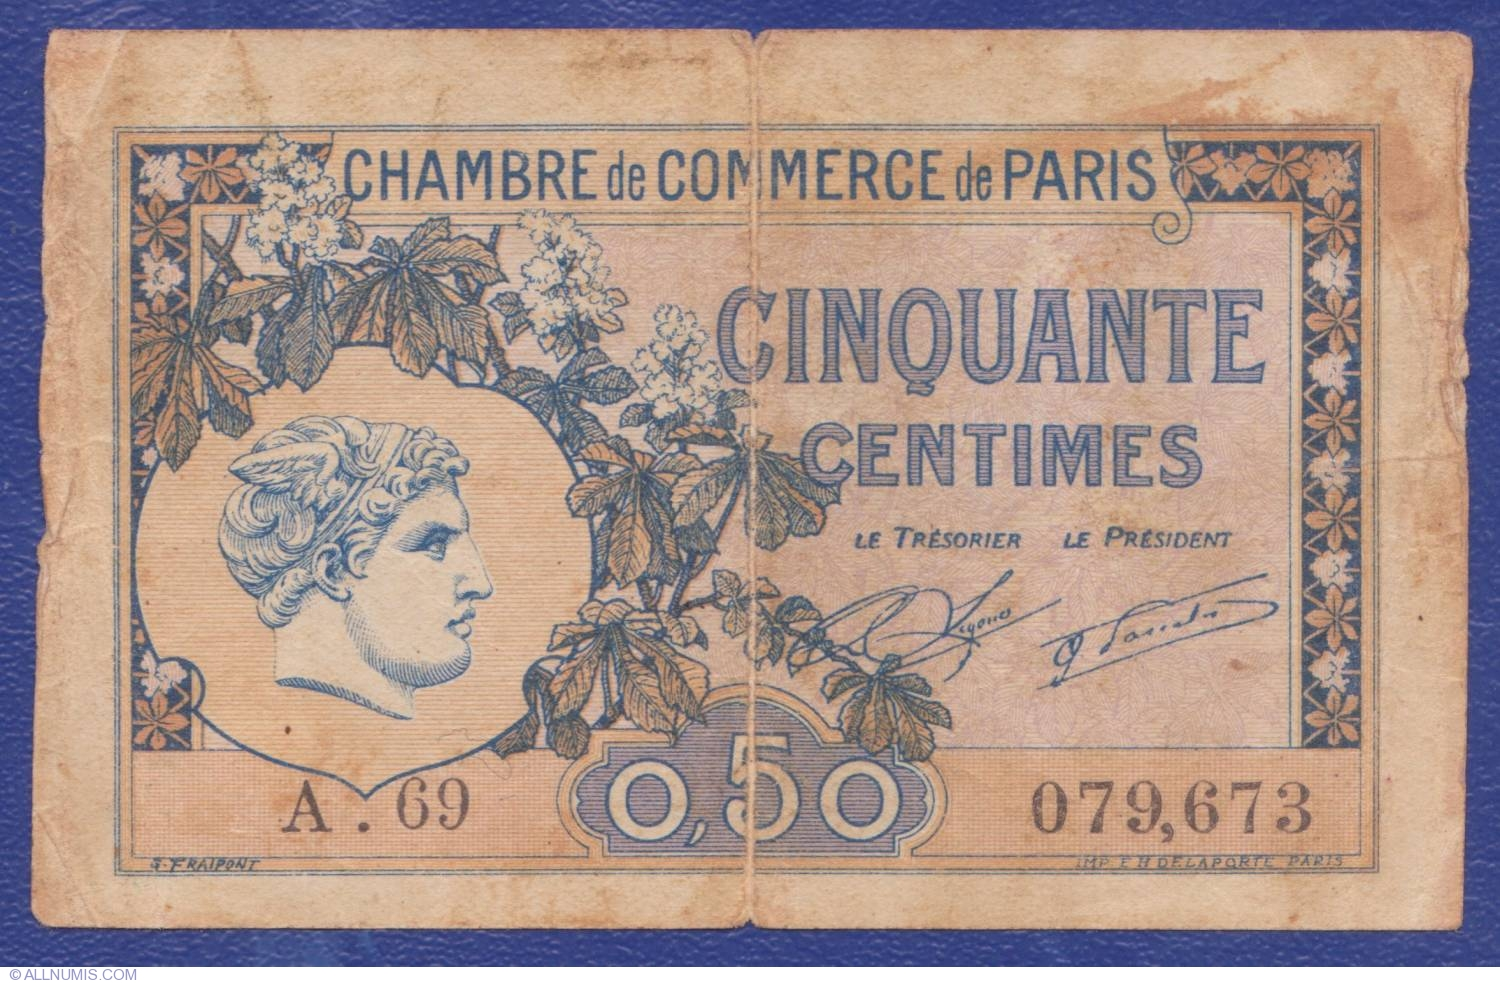 50 centimes 1920 paris chambre de commerce france for Chambre de commerce de paris